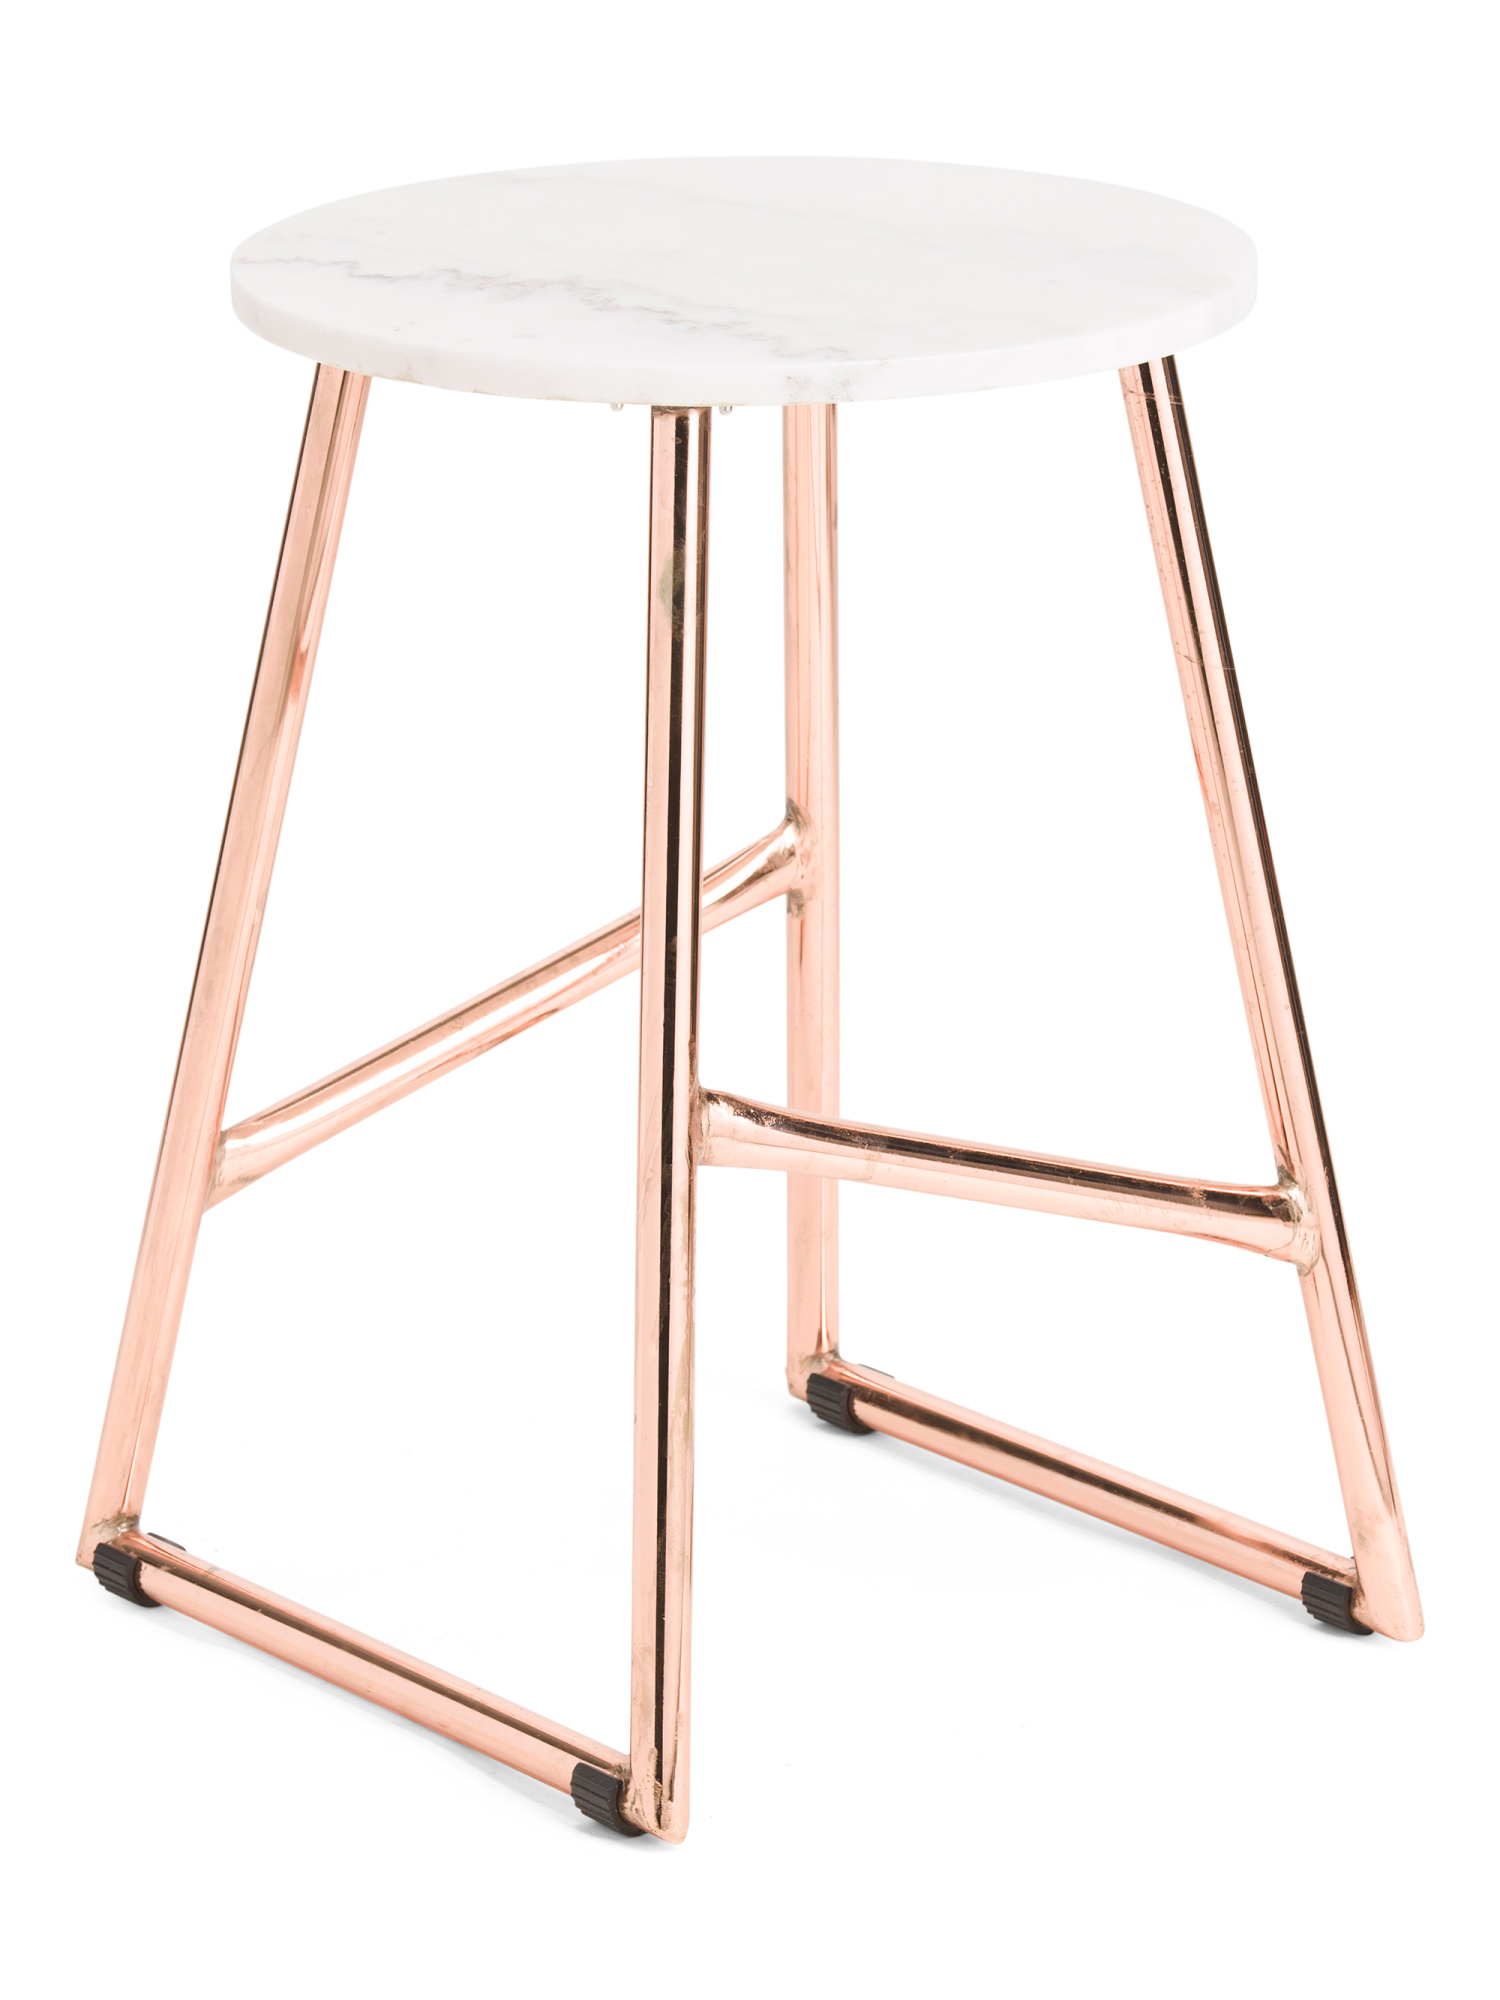 marble top accent table furniture maxx tjx gold with high resolution seater dining cover reclaimed wood bedside small triangle lamp modern design antique and glass coffee metal